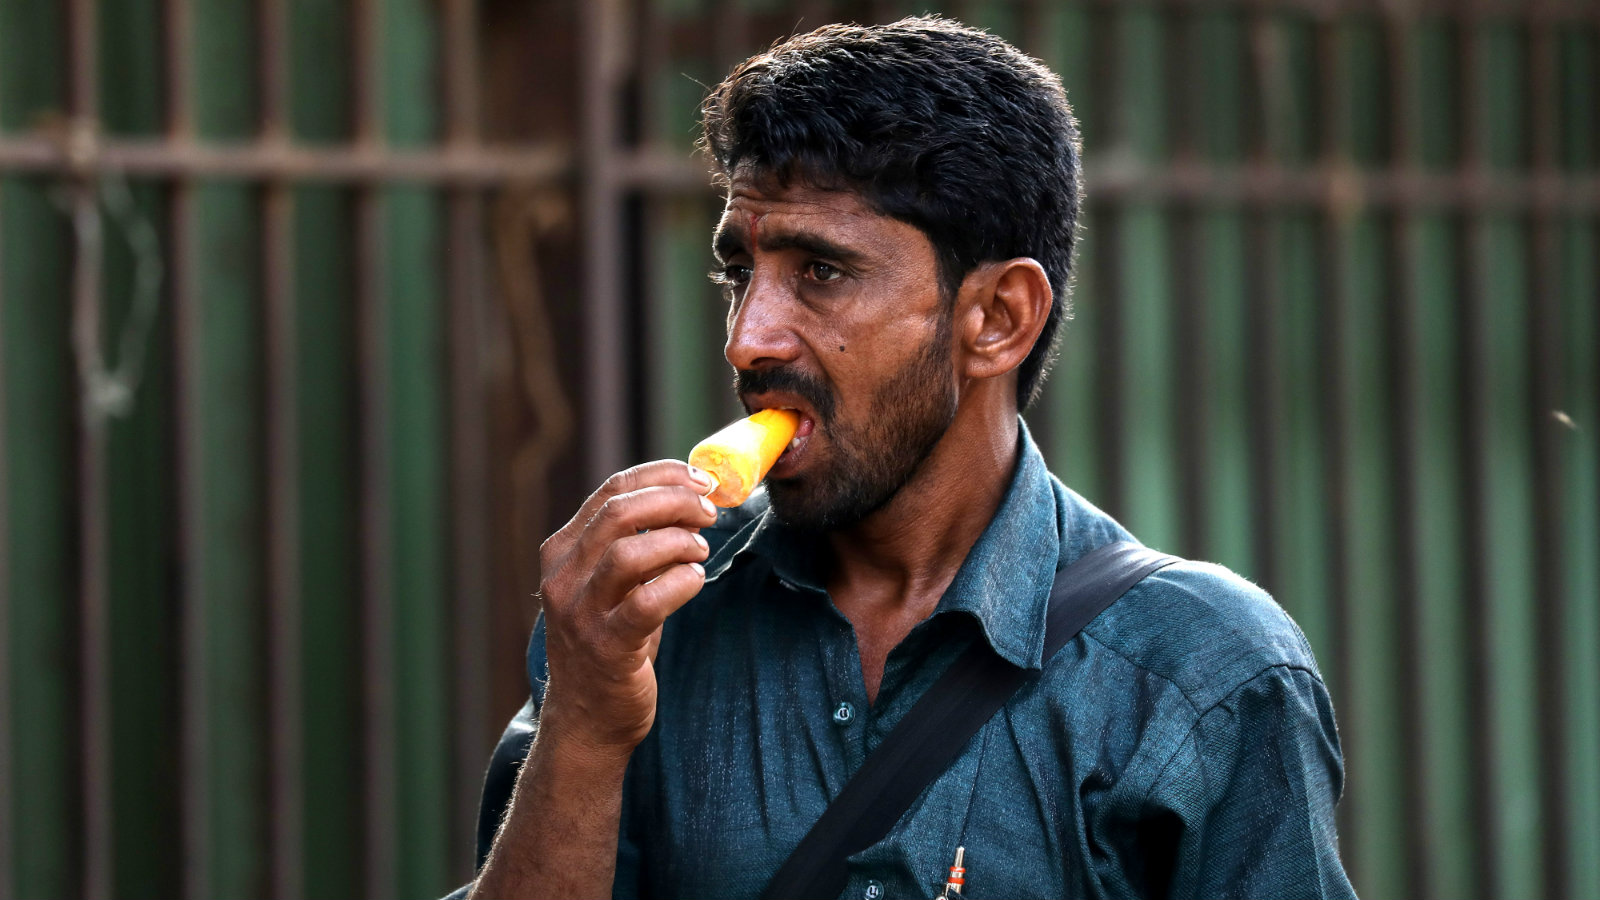 An Indian man eats ice-cream to cool himself during a hot sunny day in Mumbai, India, 30 March 2017. According to reports, large parts of Maharashtra are under heat wave, with unusual temperature hovering above 40 degree Celsius.